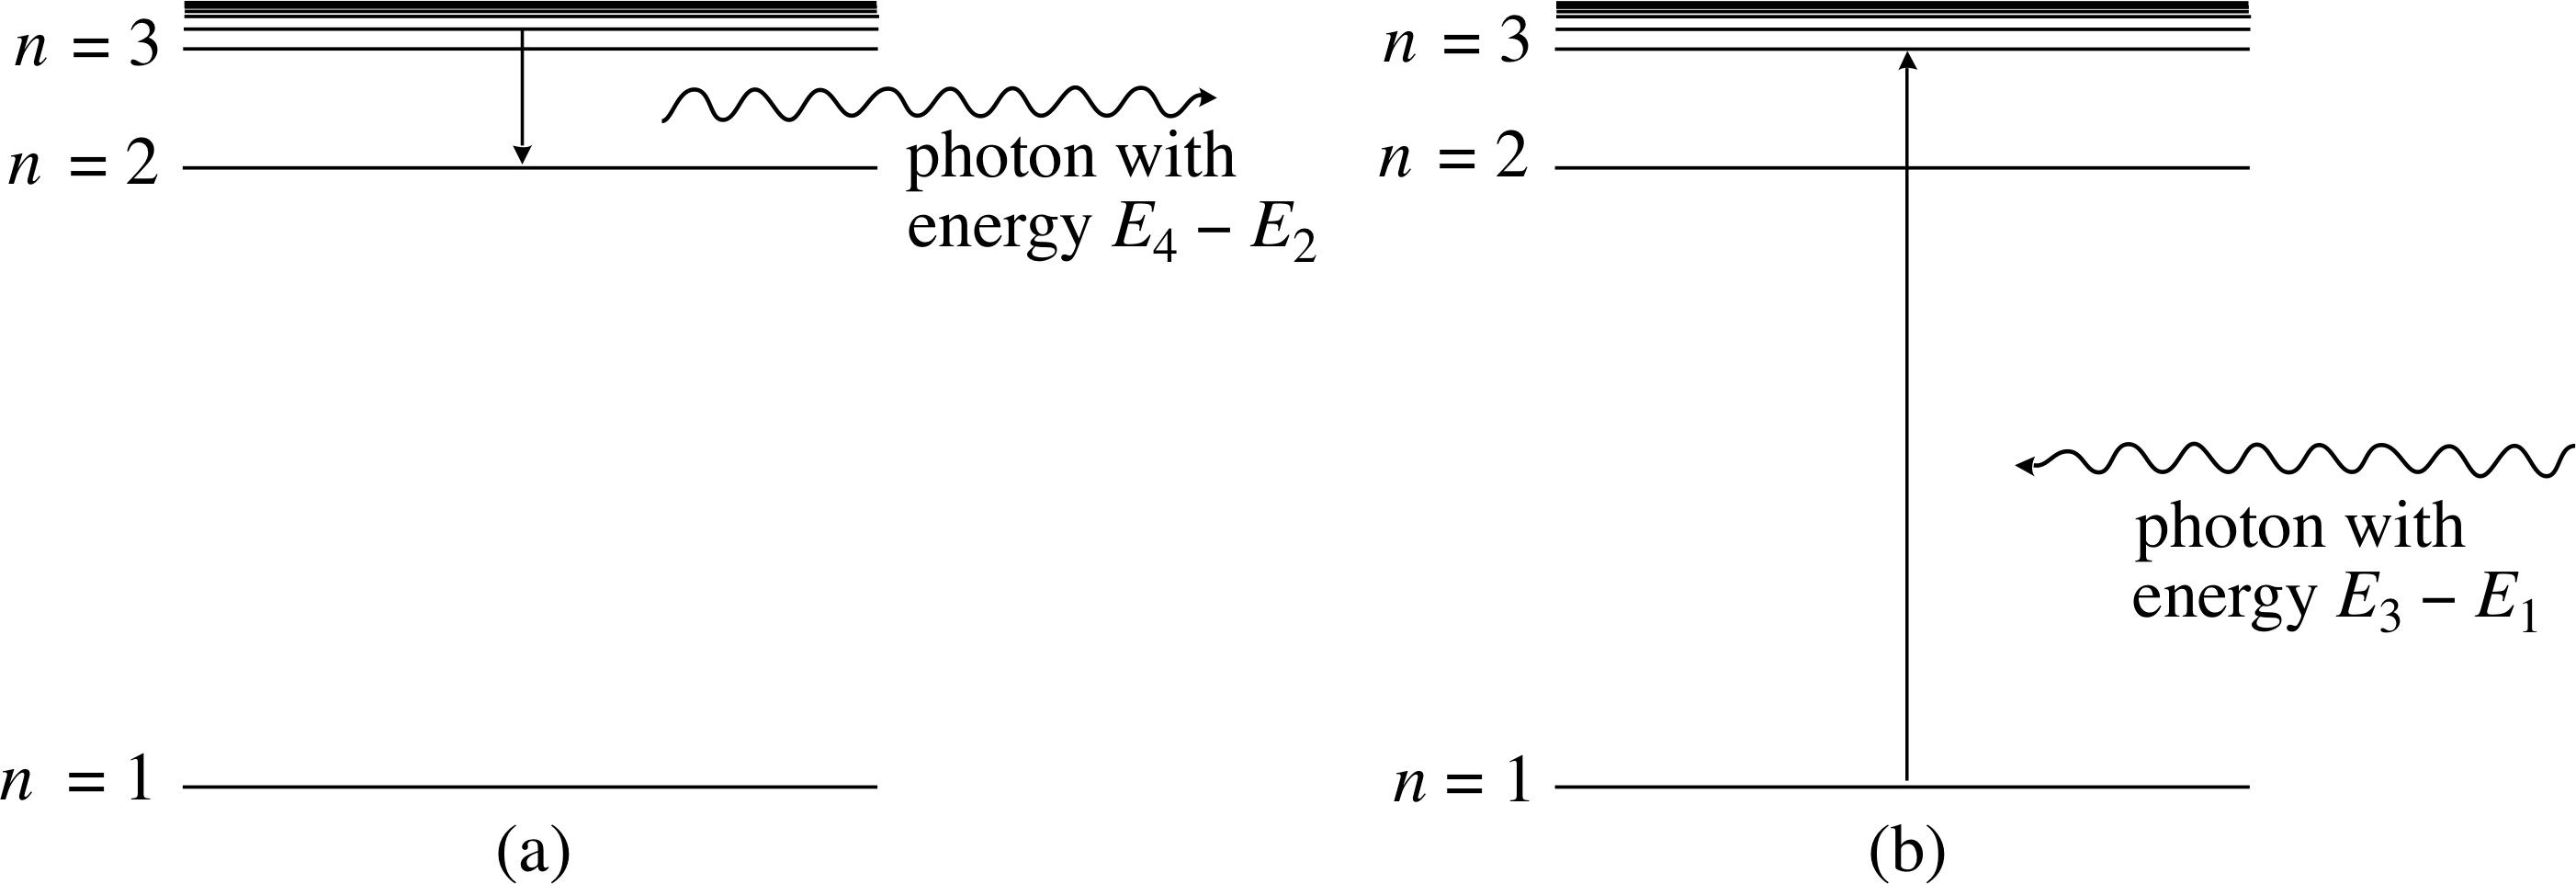 What Is The Equation Of Energy A Photon